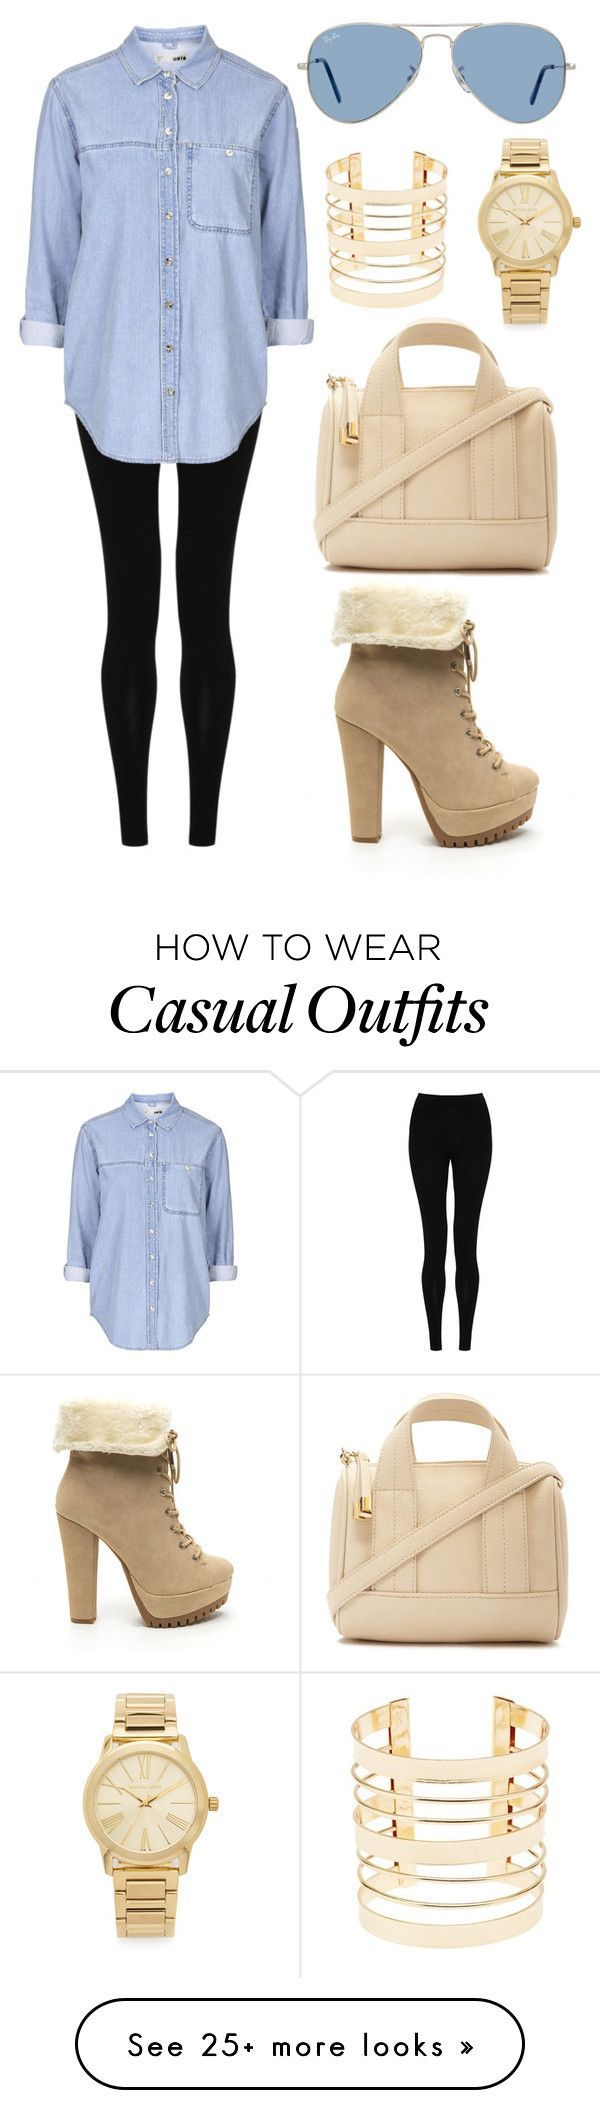 """Casual: Denim and cream"" by chaaaantelle01 on Polyvore featuring M&S Collection, Topshop, Forever 21, Charlotte Russe, Michael Kors and Ray-Ban"